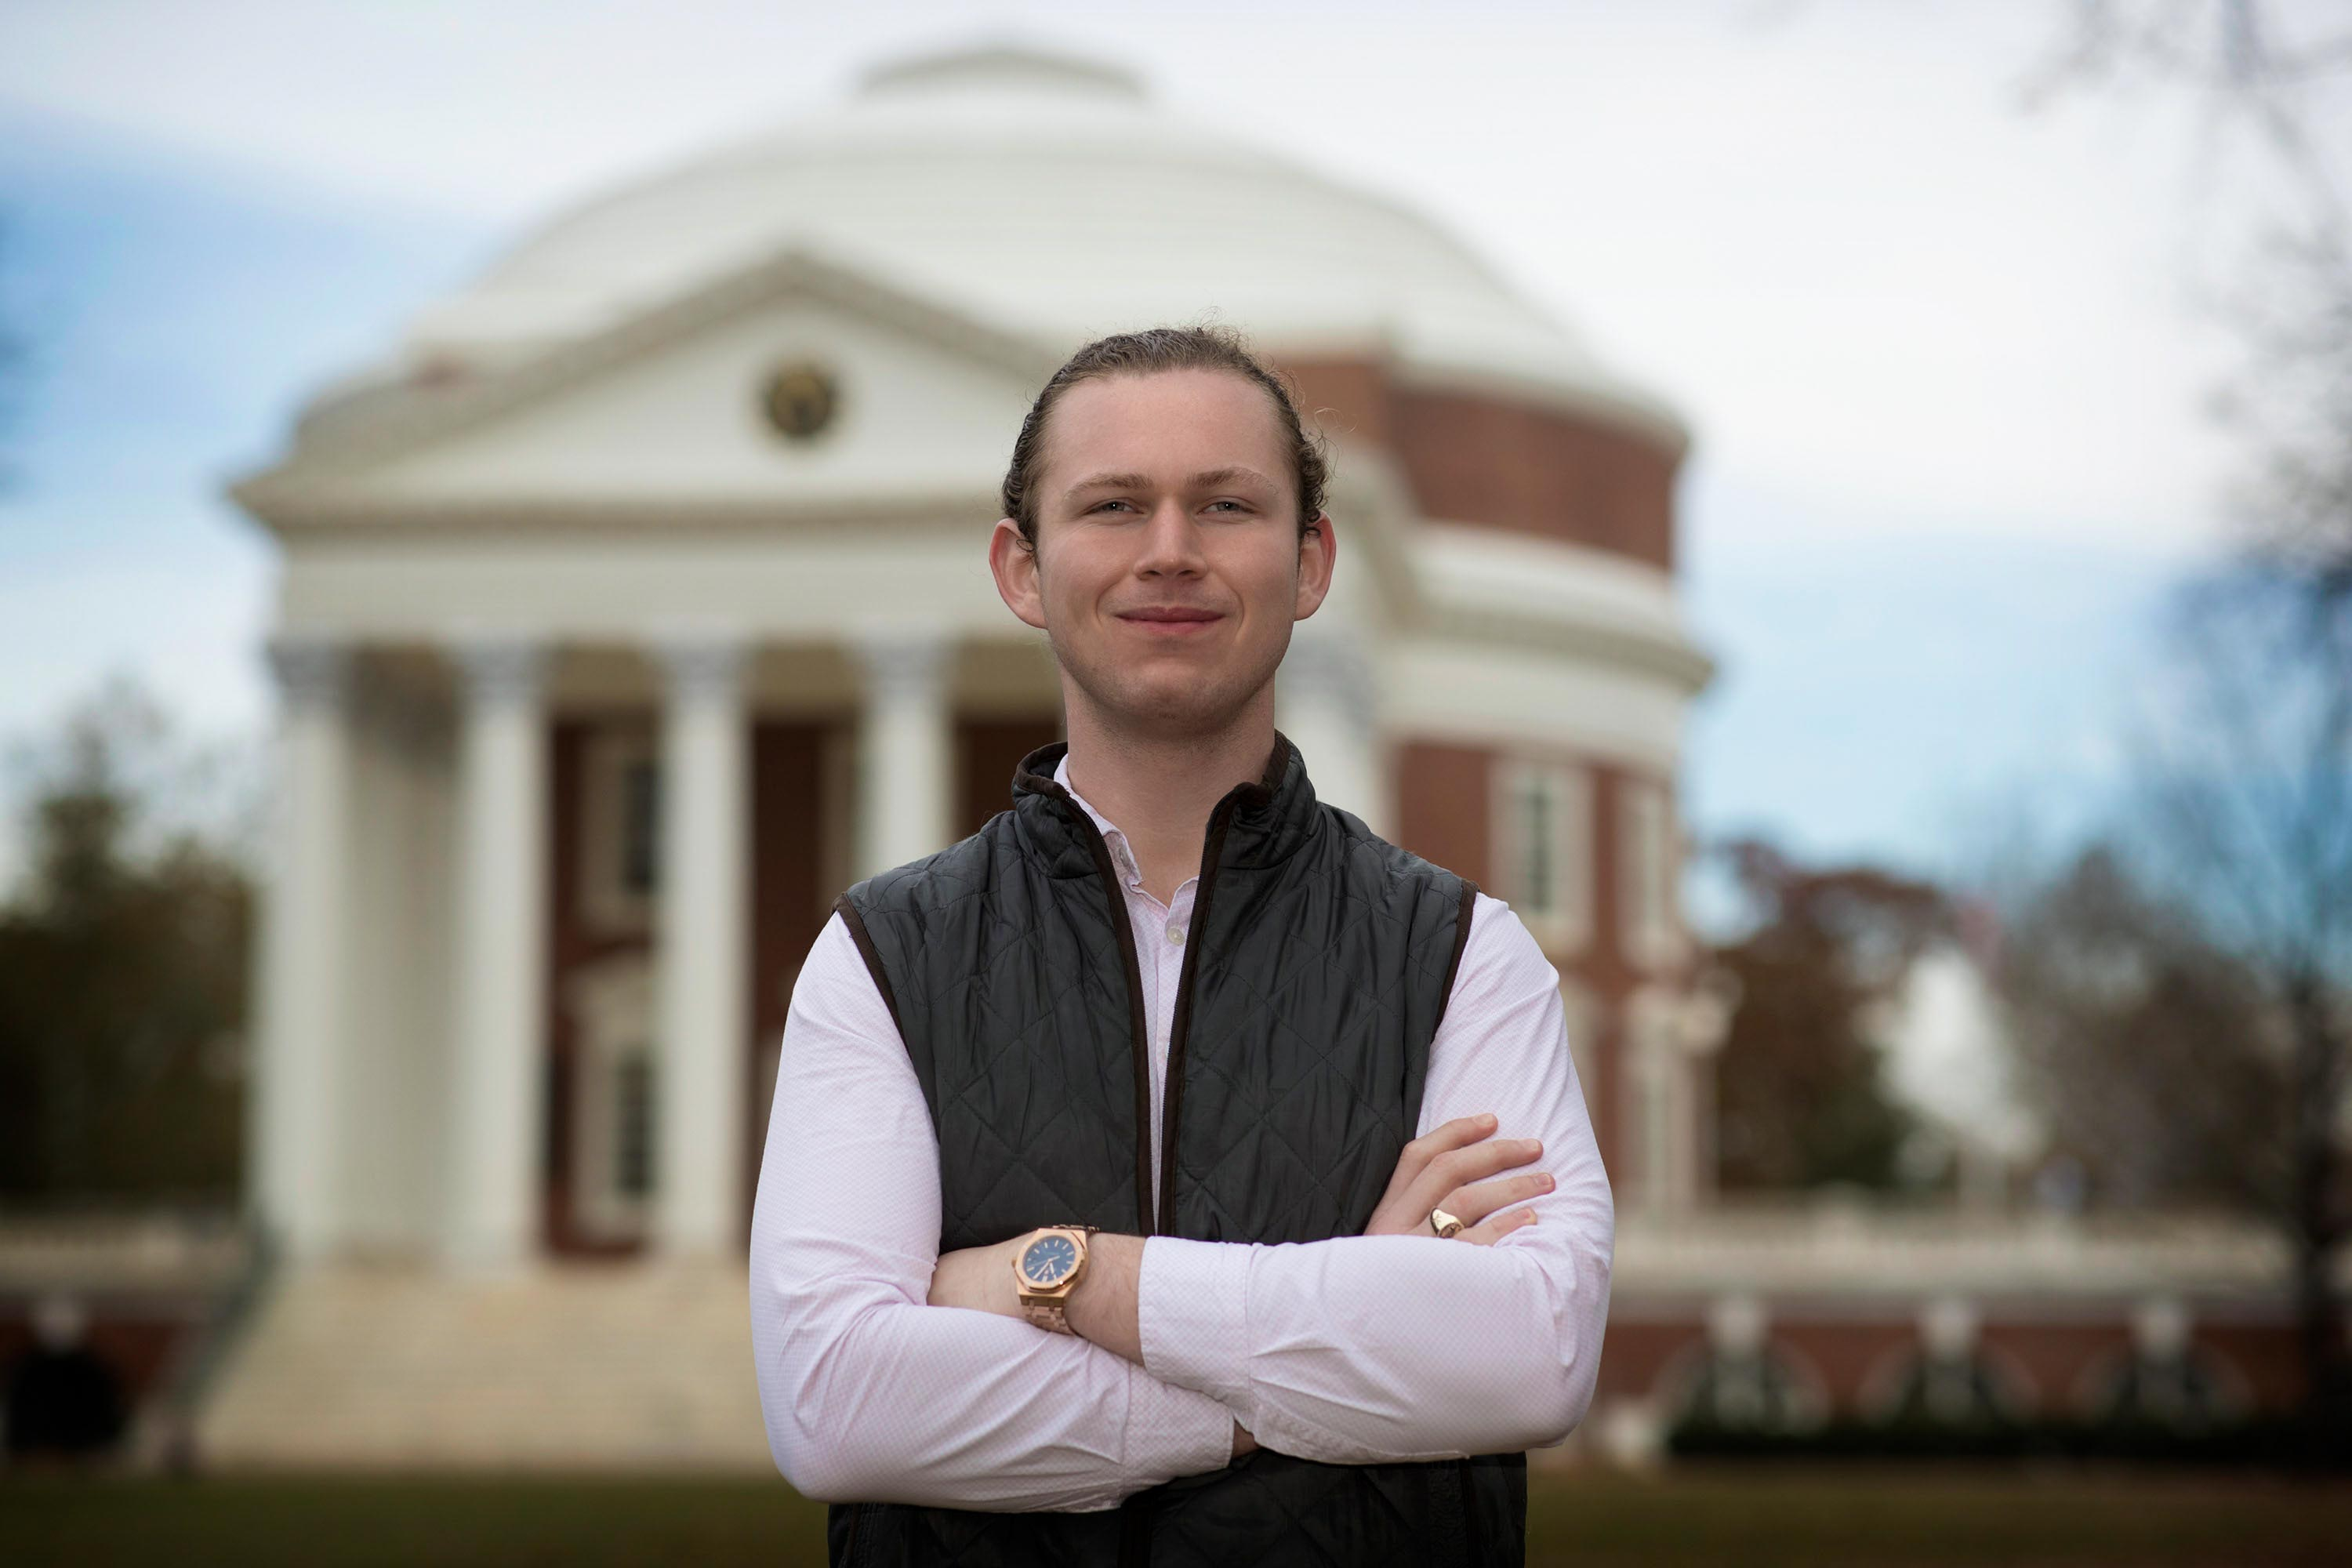 Saltville native Austin Widner has helped the University hone its outreach to students from rural areas west of Roanoke, where many students may have felt that UVA was unattainable.